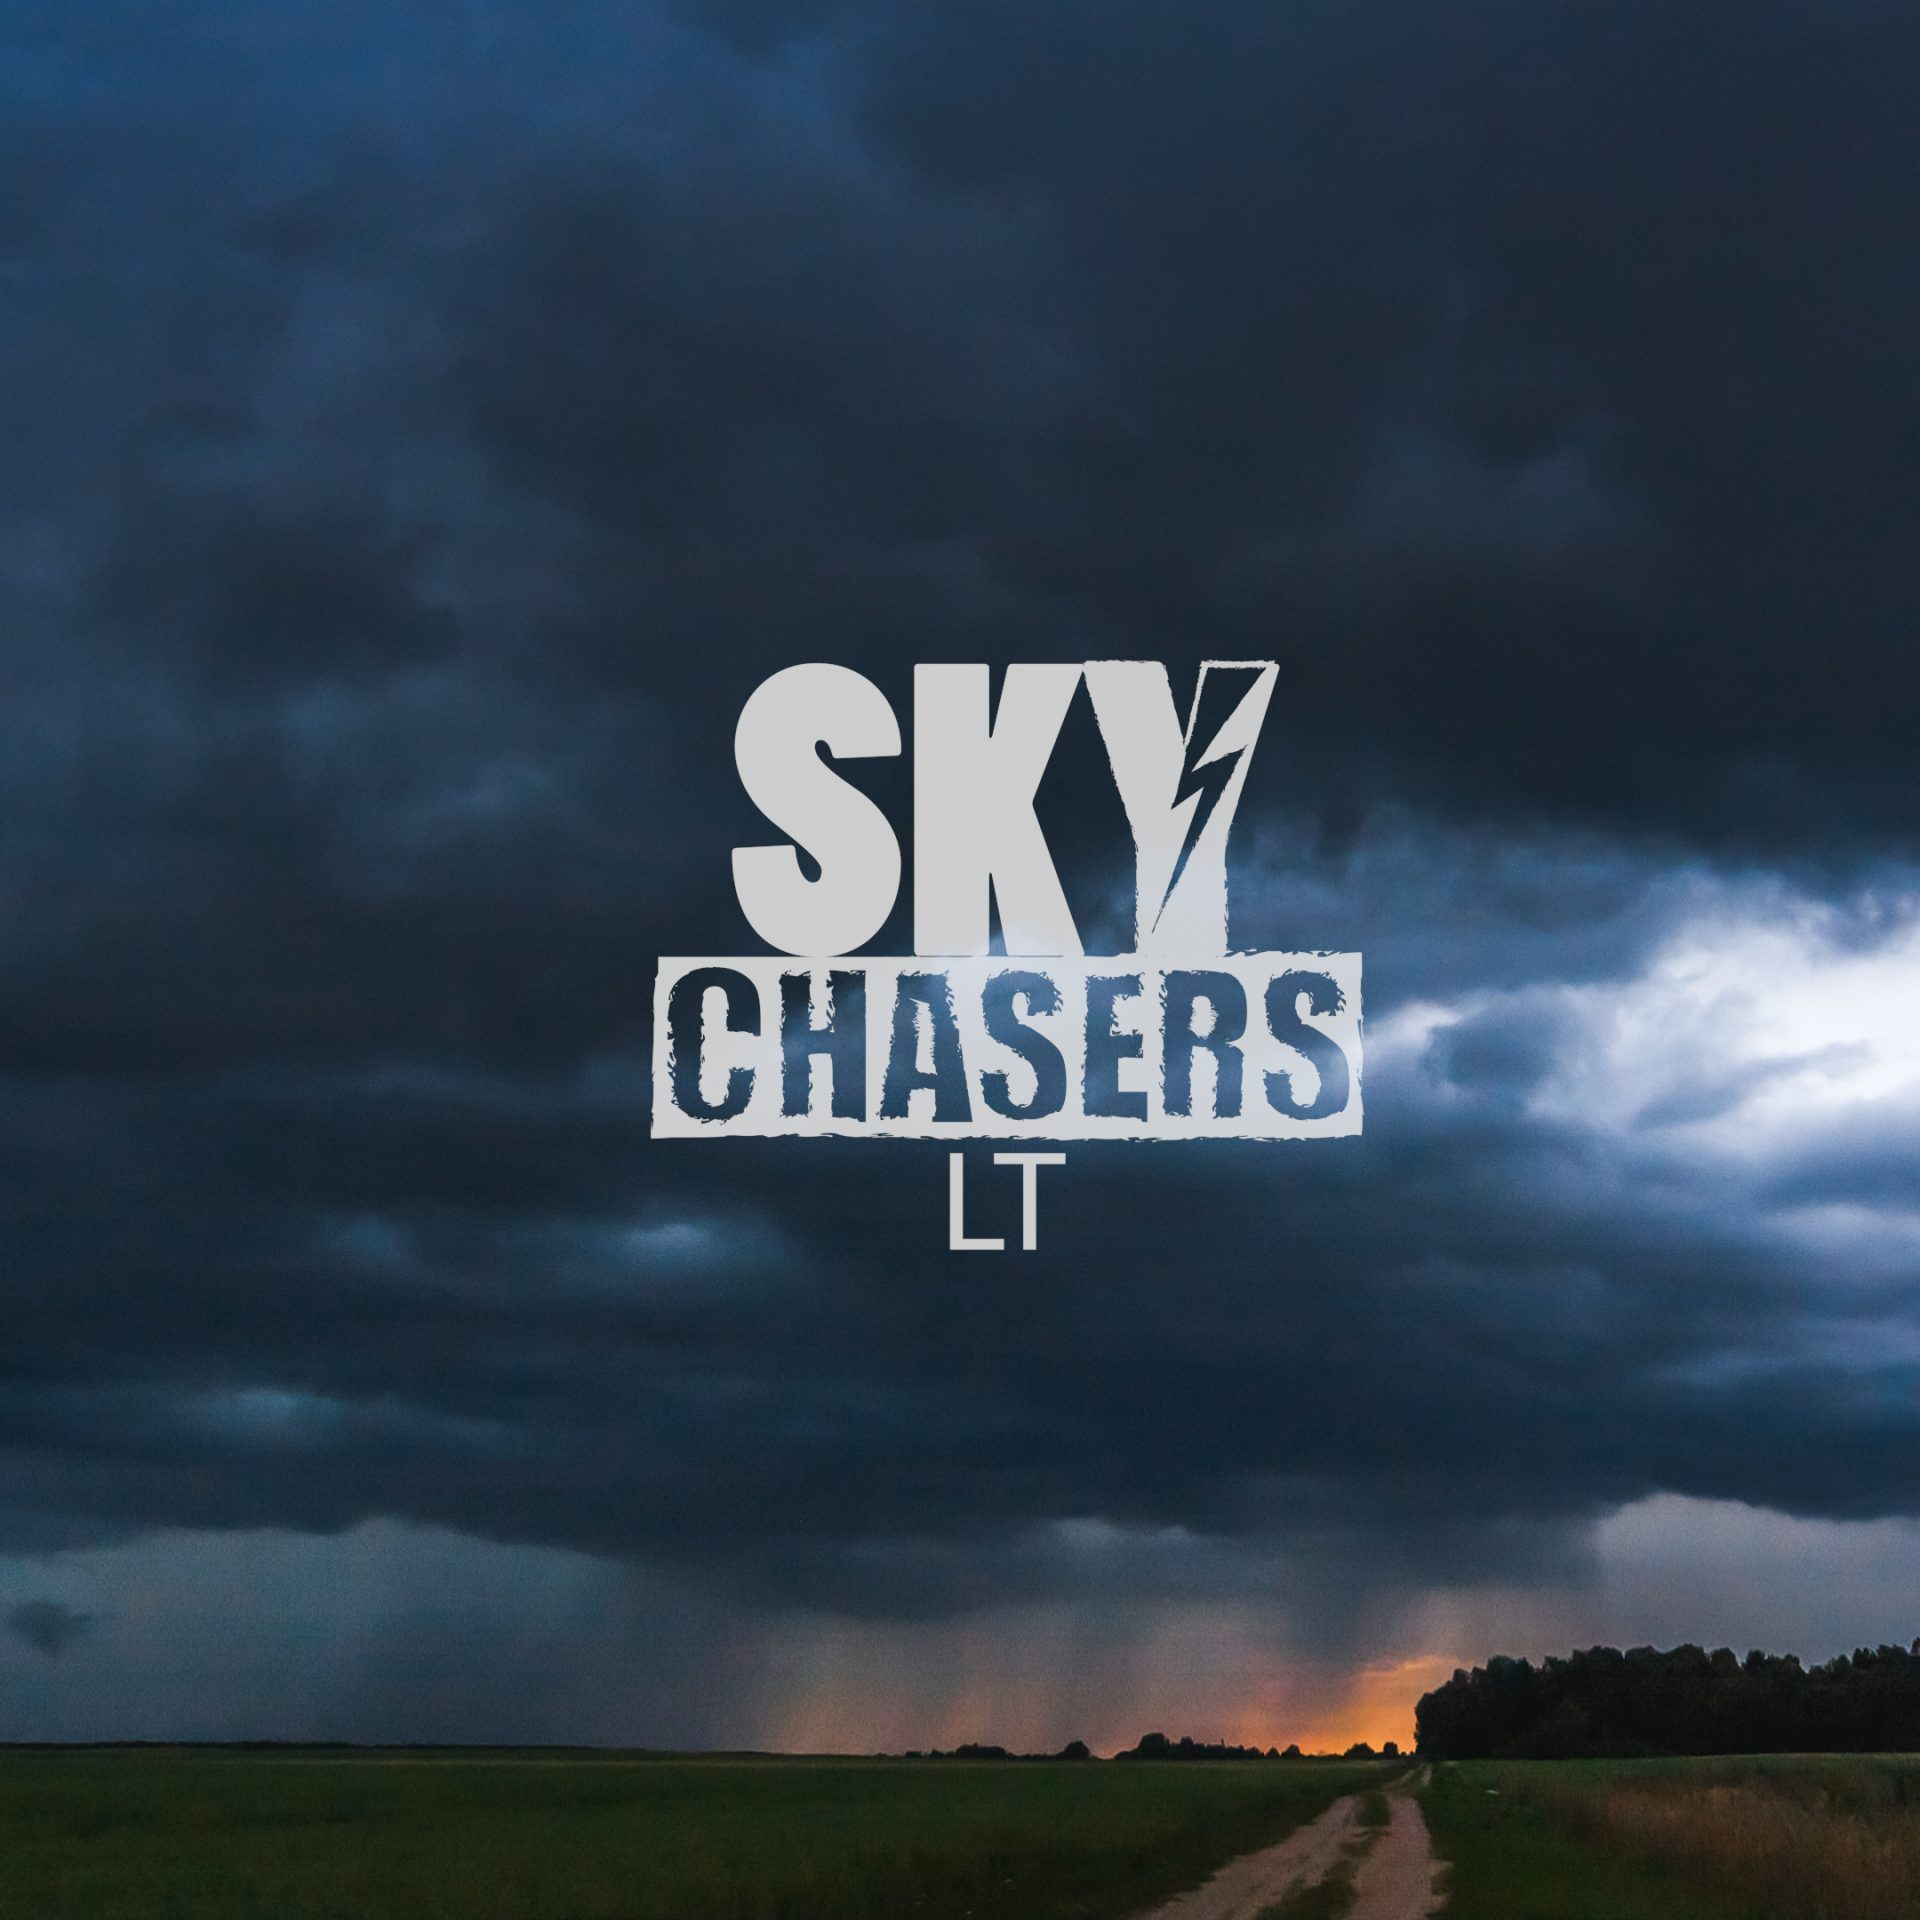 New video for Sky Chasers LT